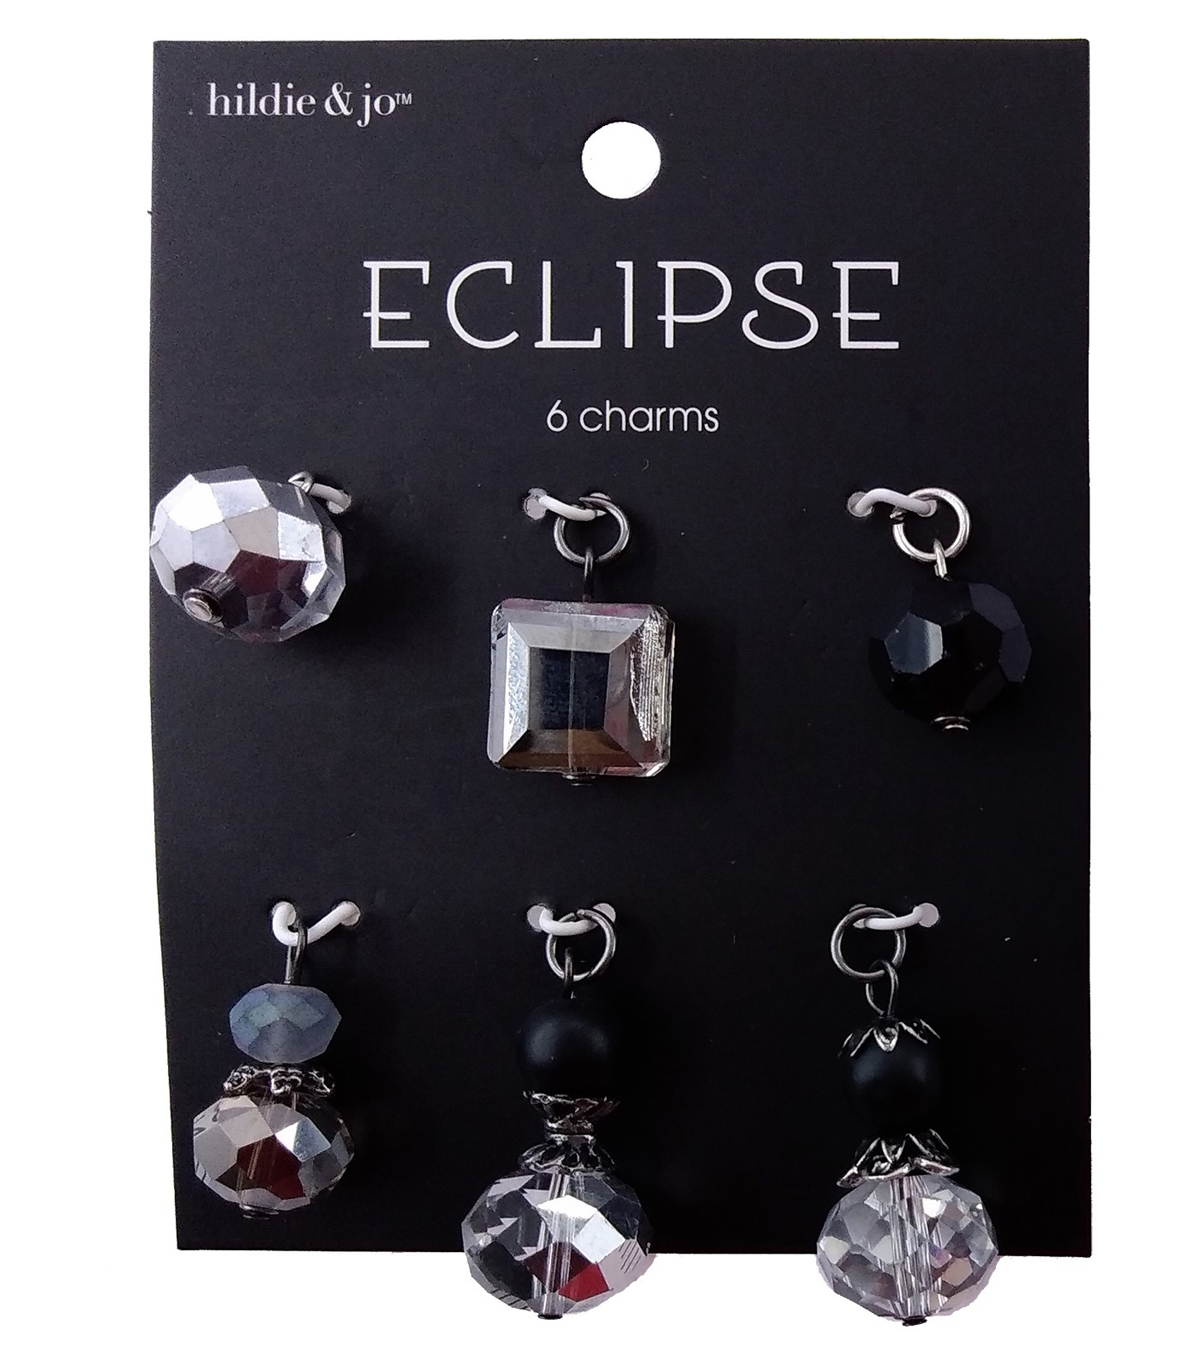 hildie & jo Eclipse Charms-Multi Black Clear Grey Stacked 6pc